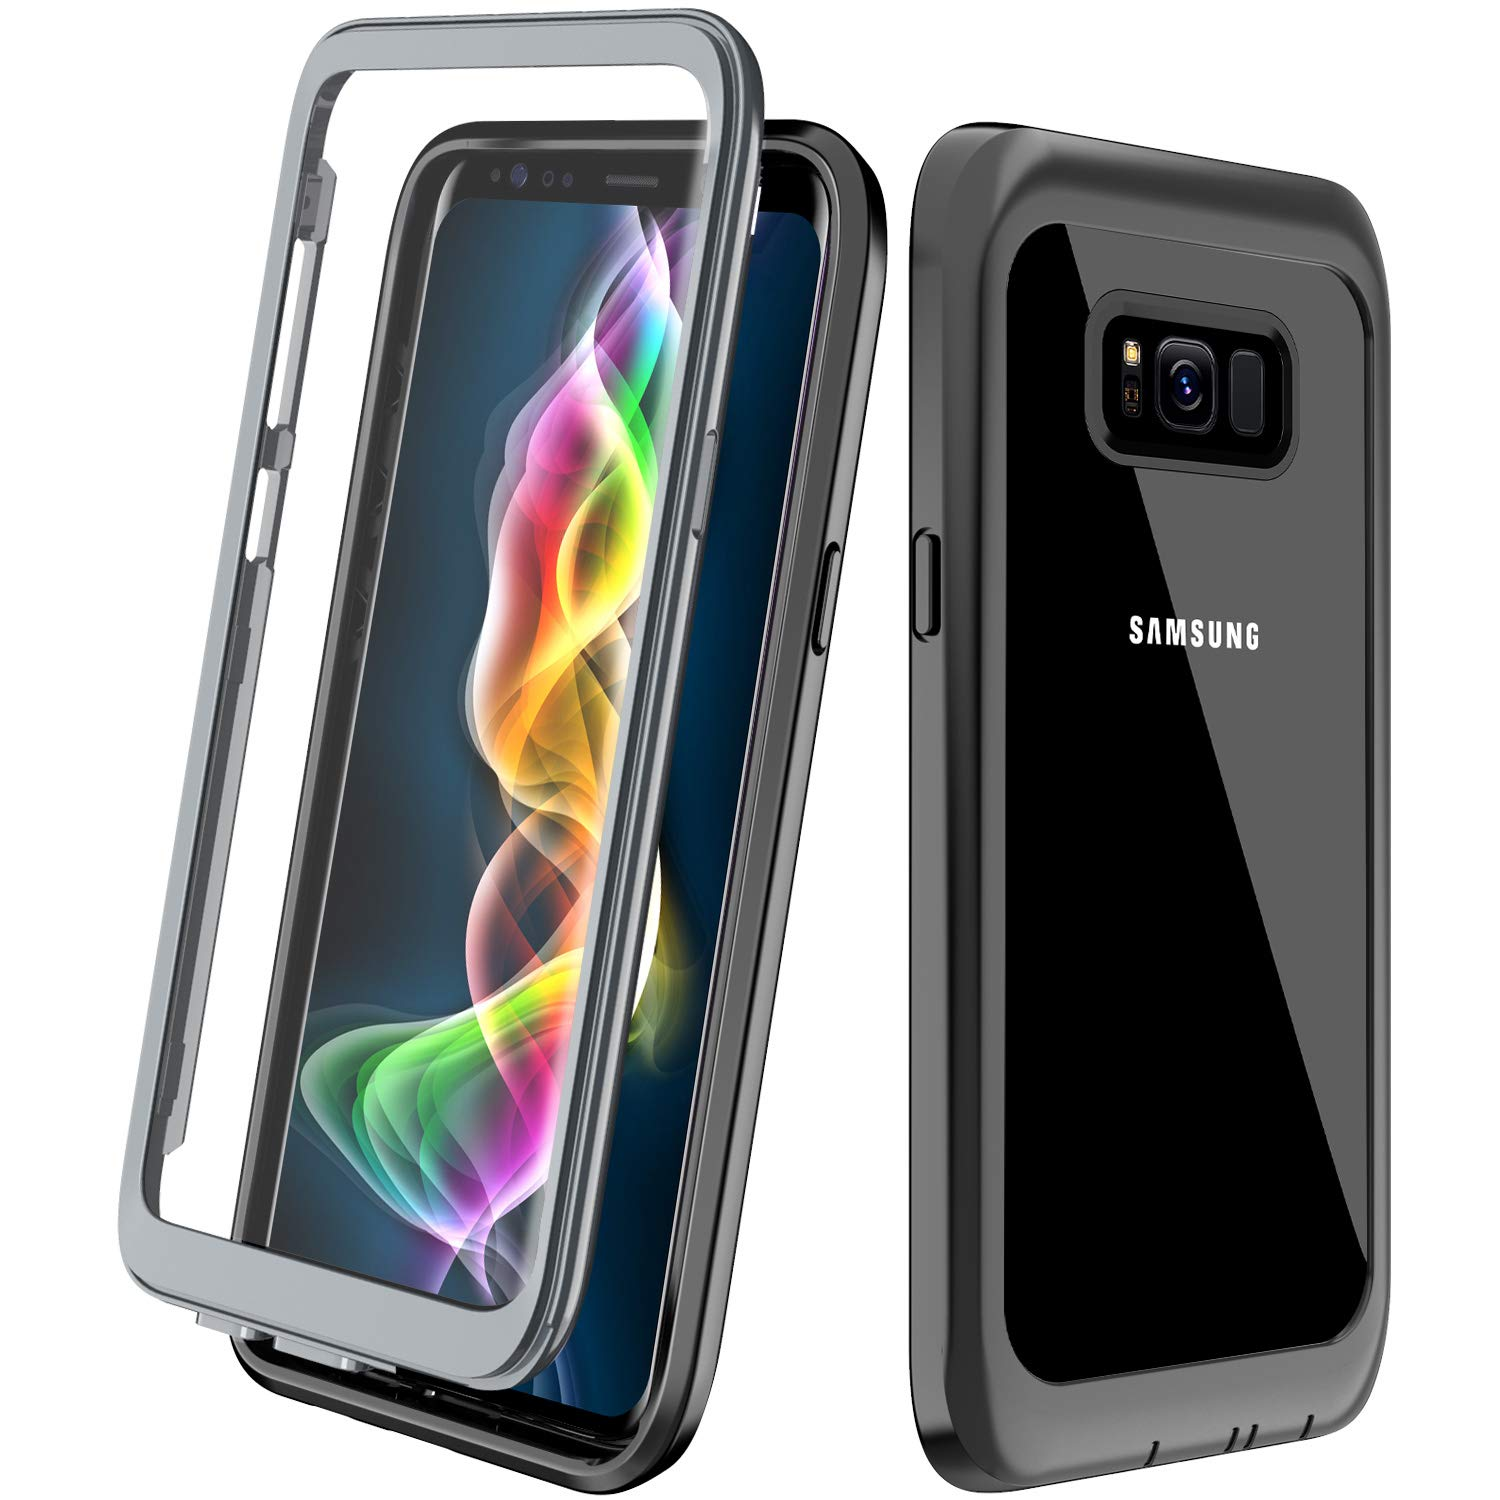 Designed Case for Samsung Galaxy S8 Case,ALOFOX Full Body Bumper Case Built-in Screen Protector Slim Clear Shock-Absorbing Dustproof Lightweight Cover Case Samsung Galaxy S8 (5.8 Inch) (Black)